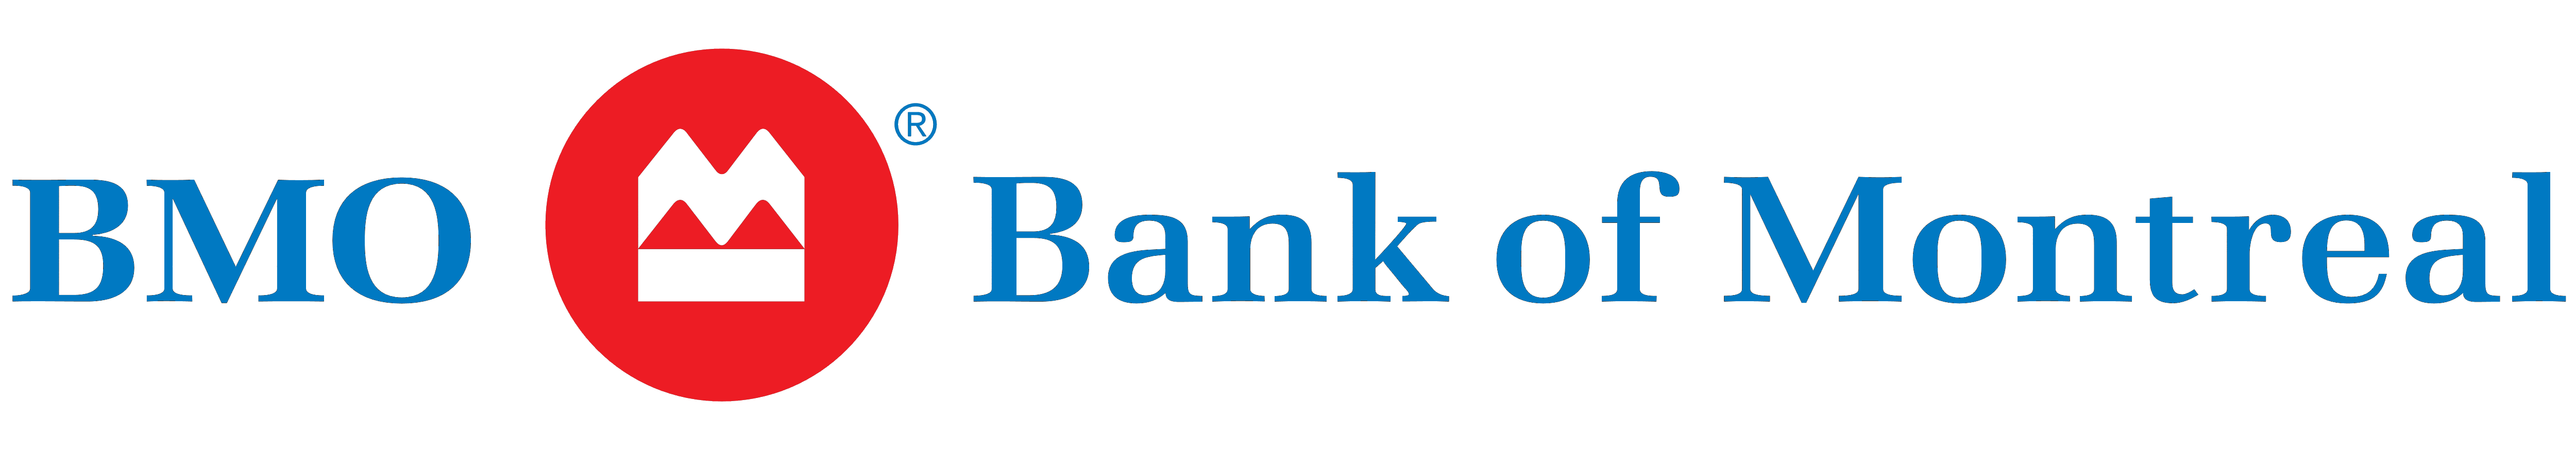 BMO_logo_Bank_of_Montreal